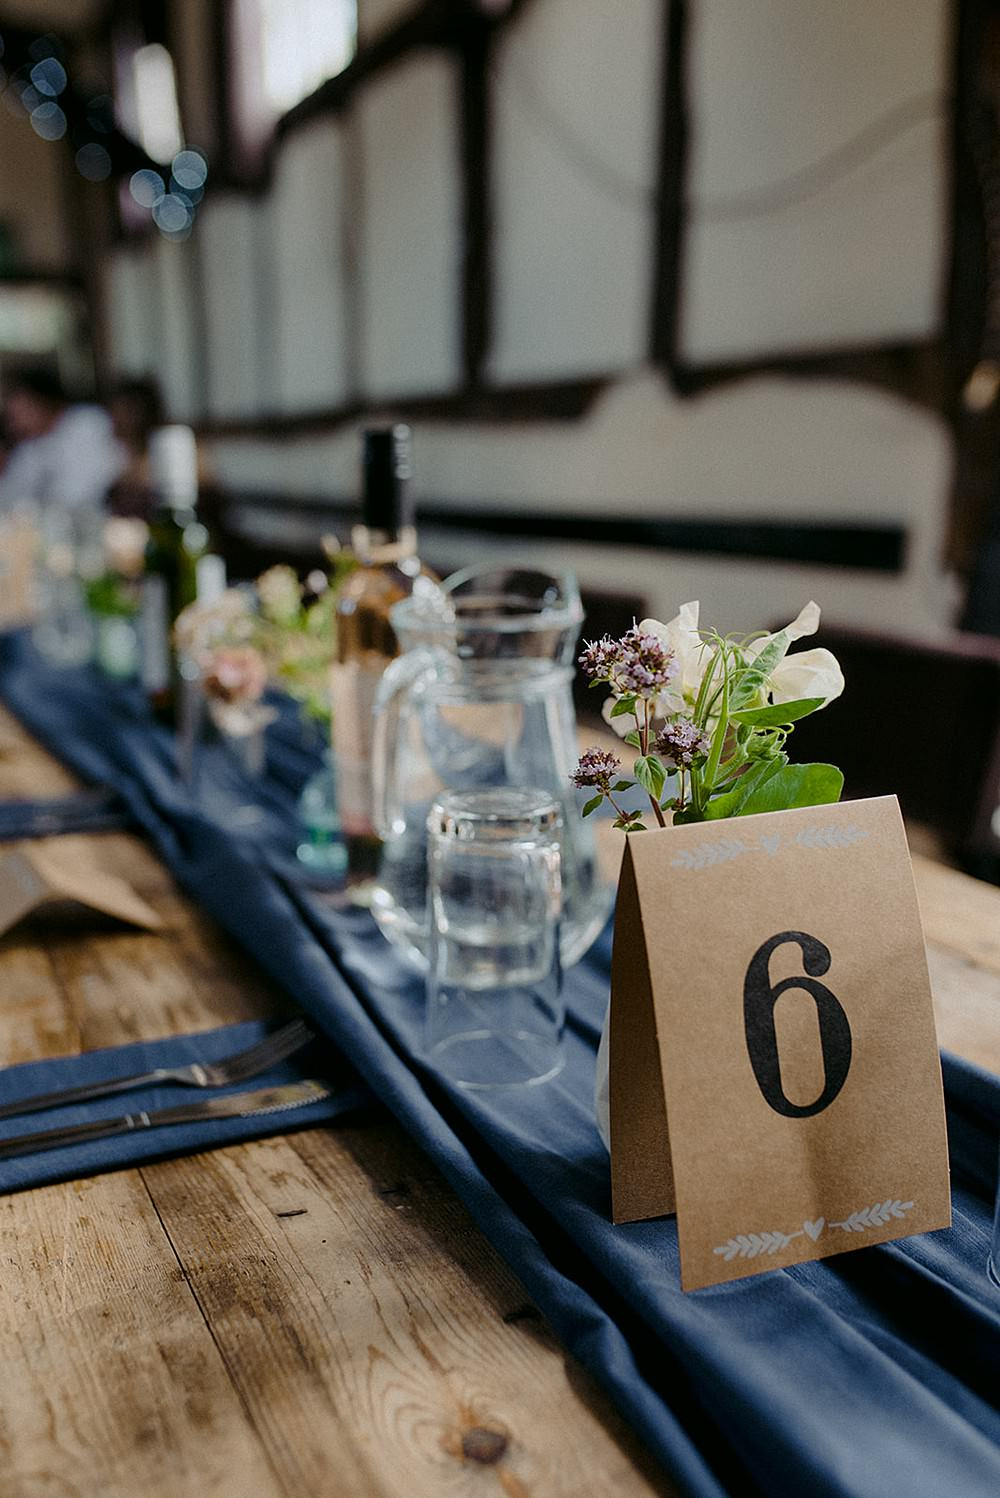 Rustic Wooden Table Runner Blue Cloth Flowers Roses Table Name Belbroughton Church Hall Wedding Faye Green Photo